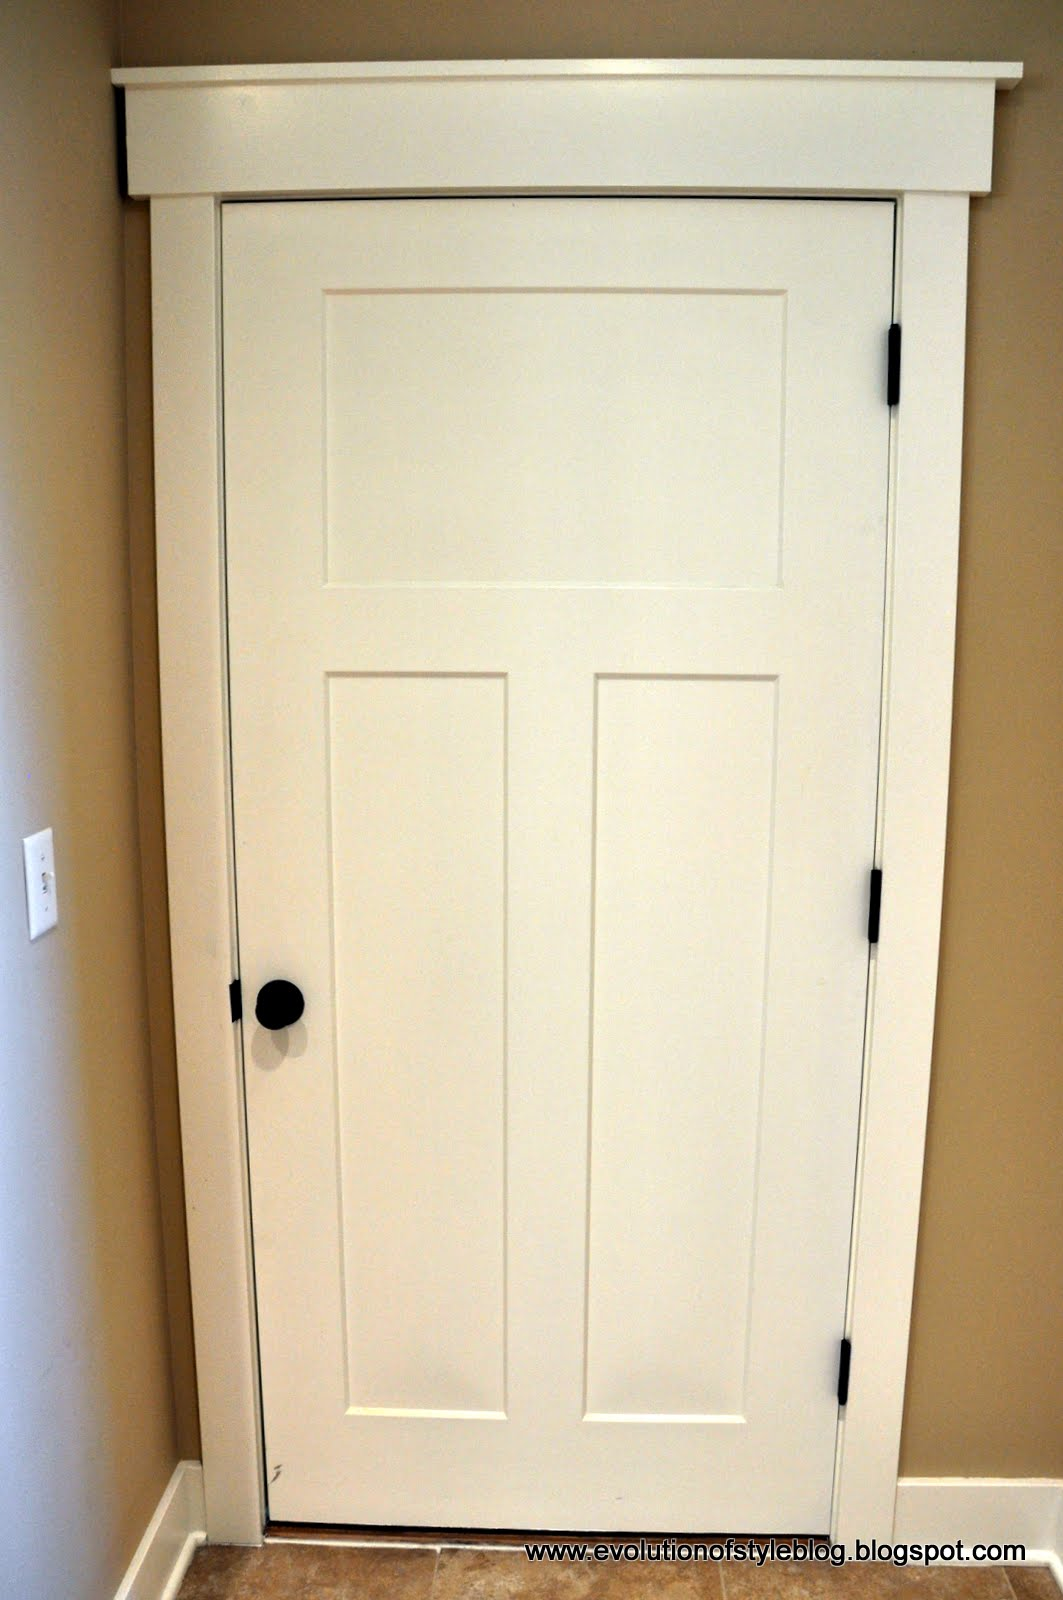 Craftsman interior doors for the people believing in magic eventelaan Choice Image